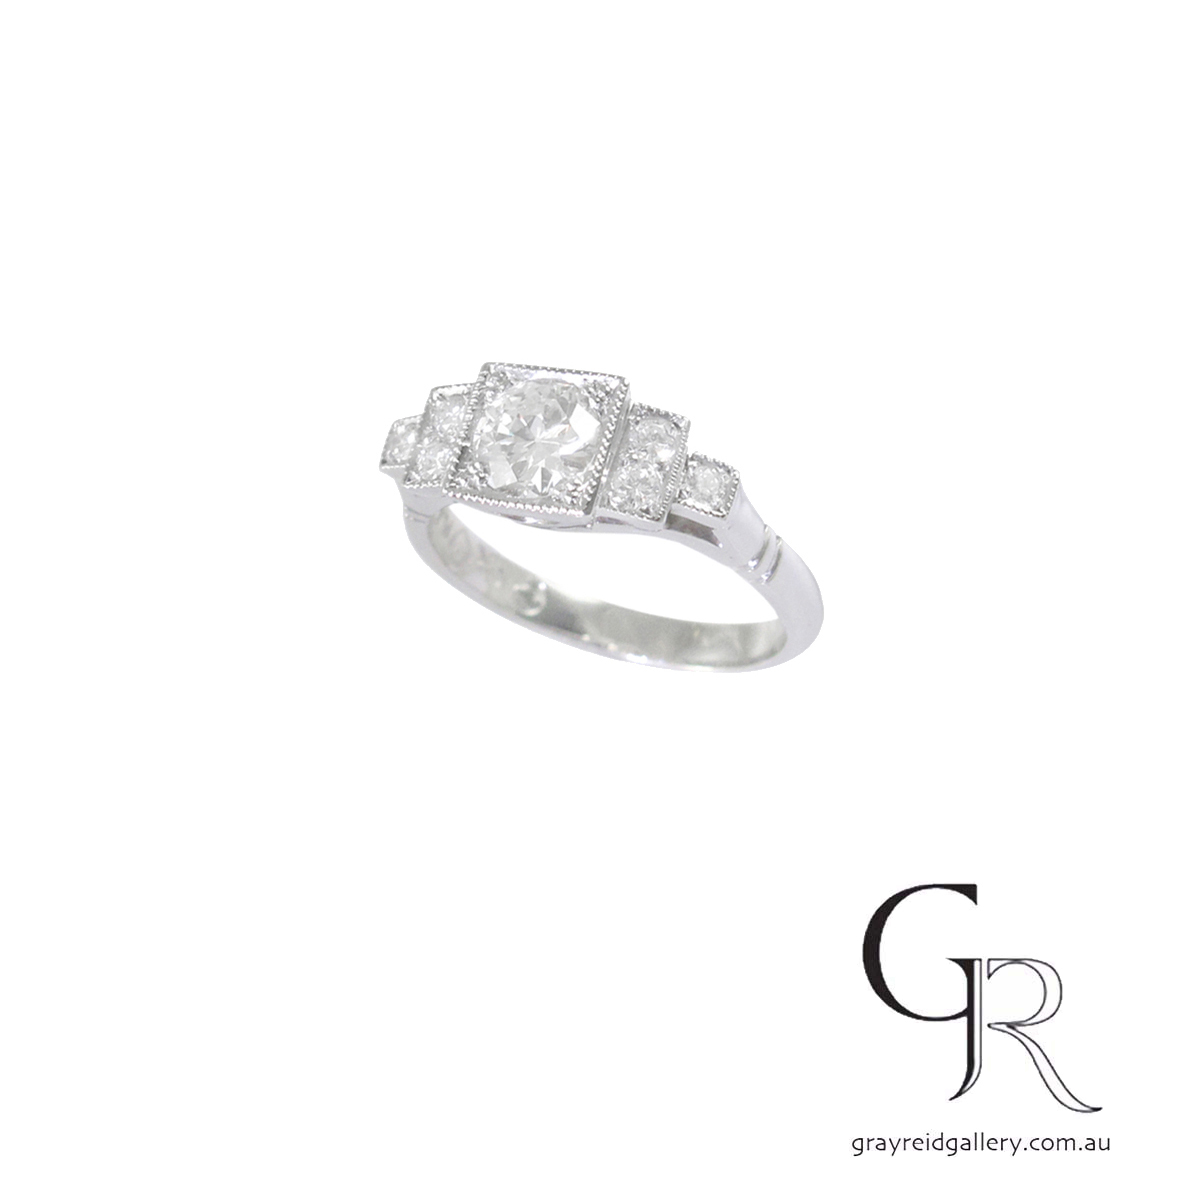 Custon made Engagement Ring Melbourne Gray Reid Gallery.jpg